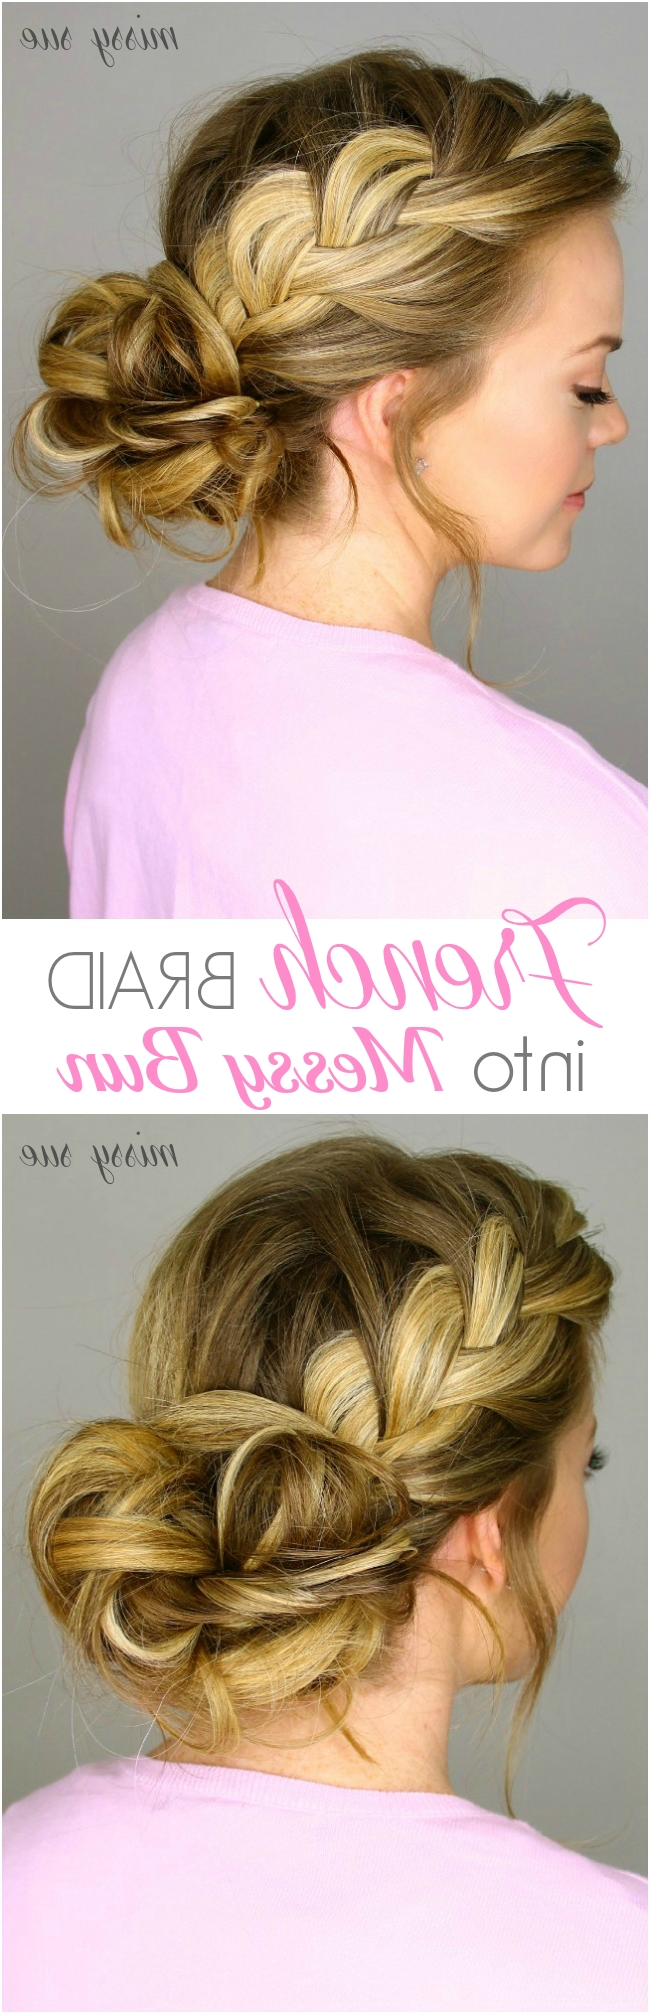 French Braid Into Messy Bun Intended For Latest Messy French Braid With Middle Part (View 2 of 15)